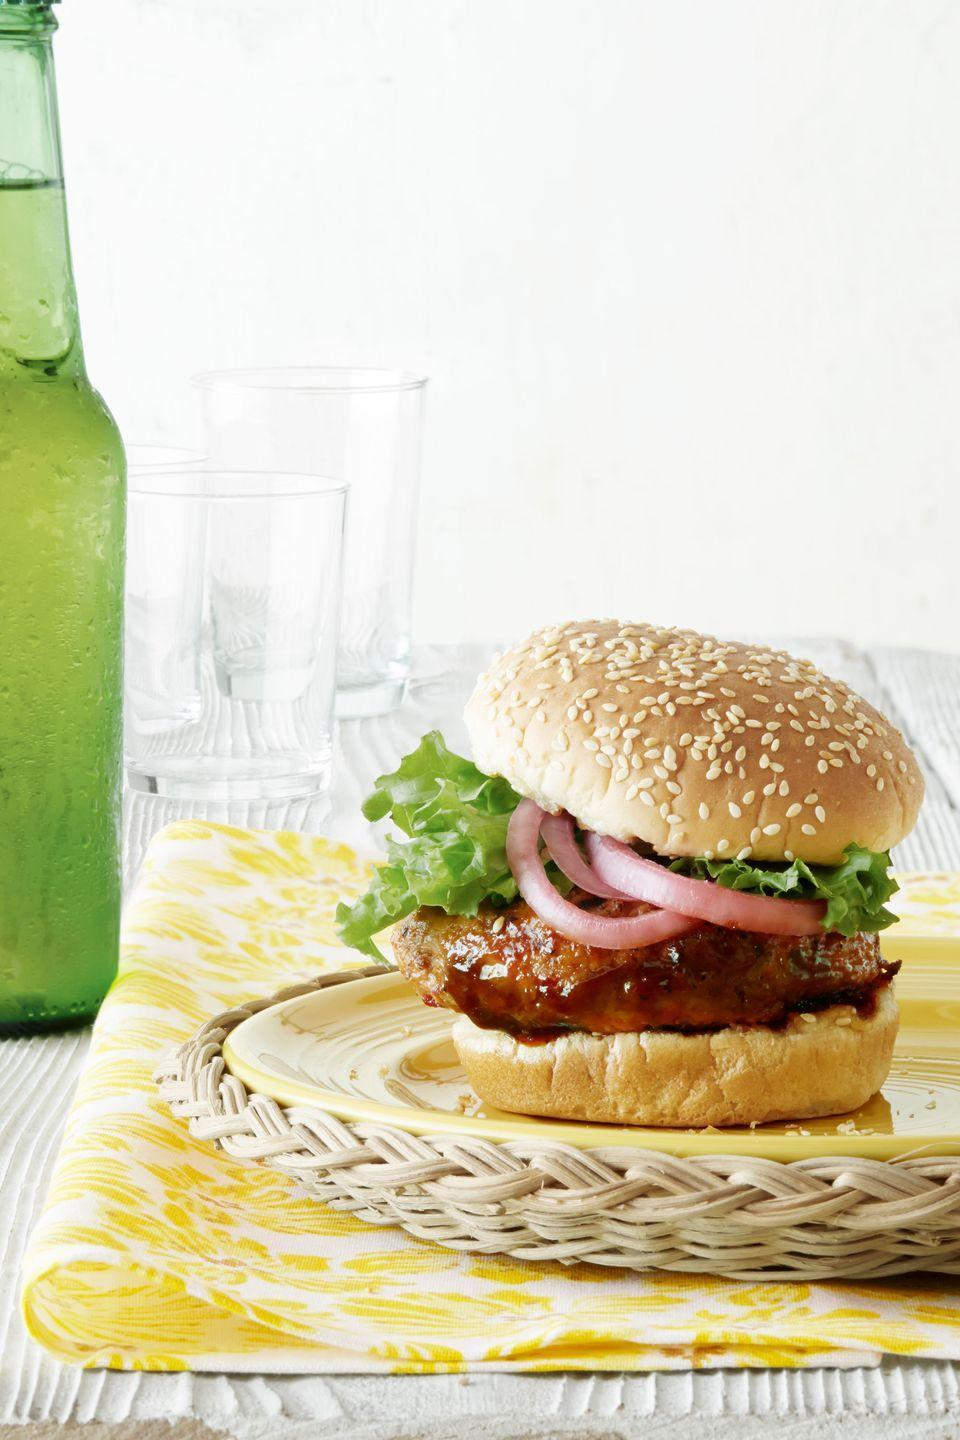 "<p>Tart, tangy, and sweet, pickled red onions and Chinese hoisin sauce make a surprisingly flavorful but simple topping for lean chicken burgers.</p><p><strong><a href=""https://www.countryliving.com/food-drinks/recipes/a4211/hoisin-chicken-burgers-pickled-red-onions-recipe-clv0813/"" rel=""nofollow noopener"" target=""_blank"" data-ylk=""slk:Get the recipe."" class=""link rapid-noclick-resp"">Get the recipe.</a></strong></p>"